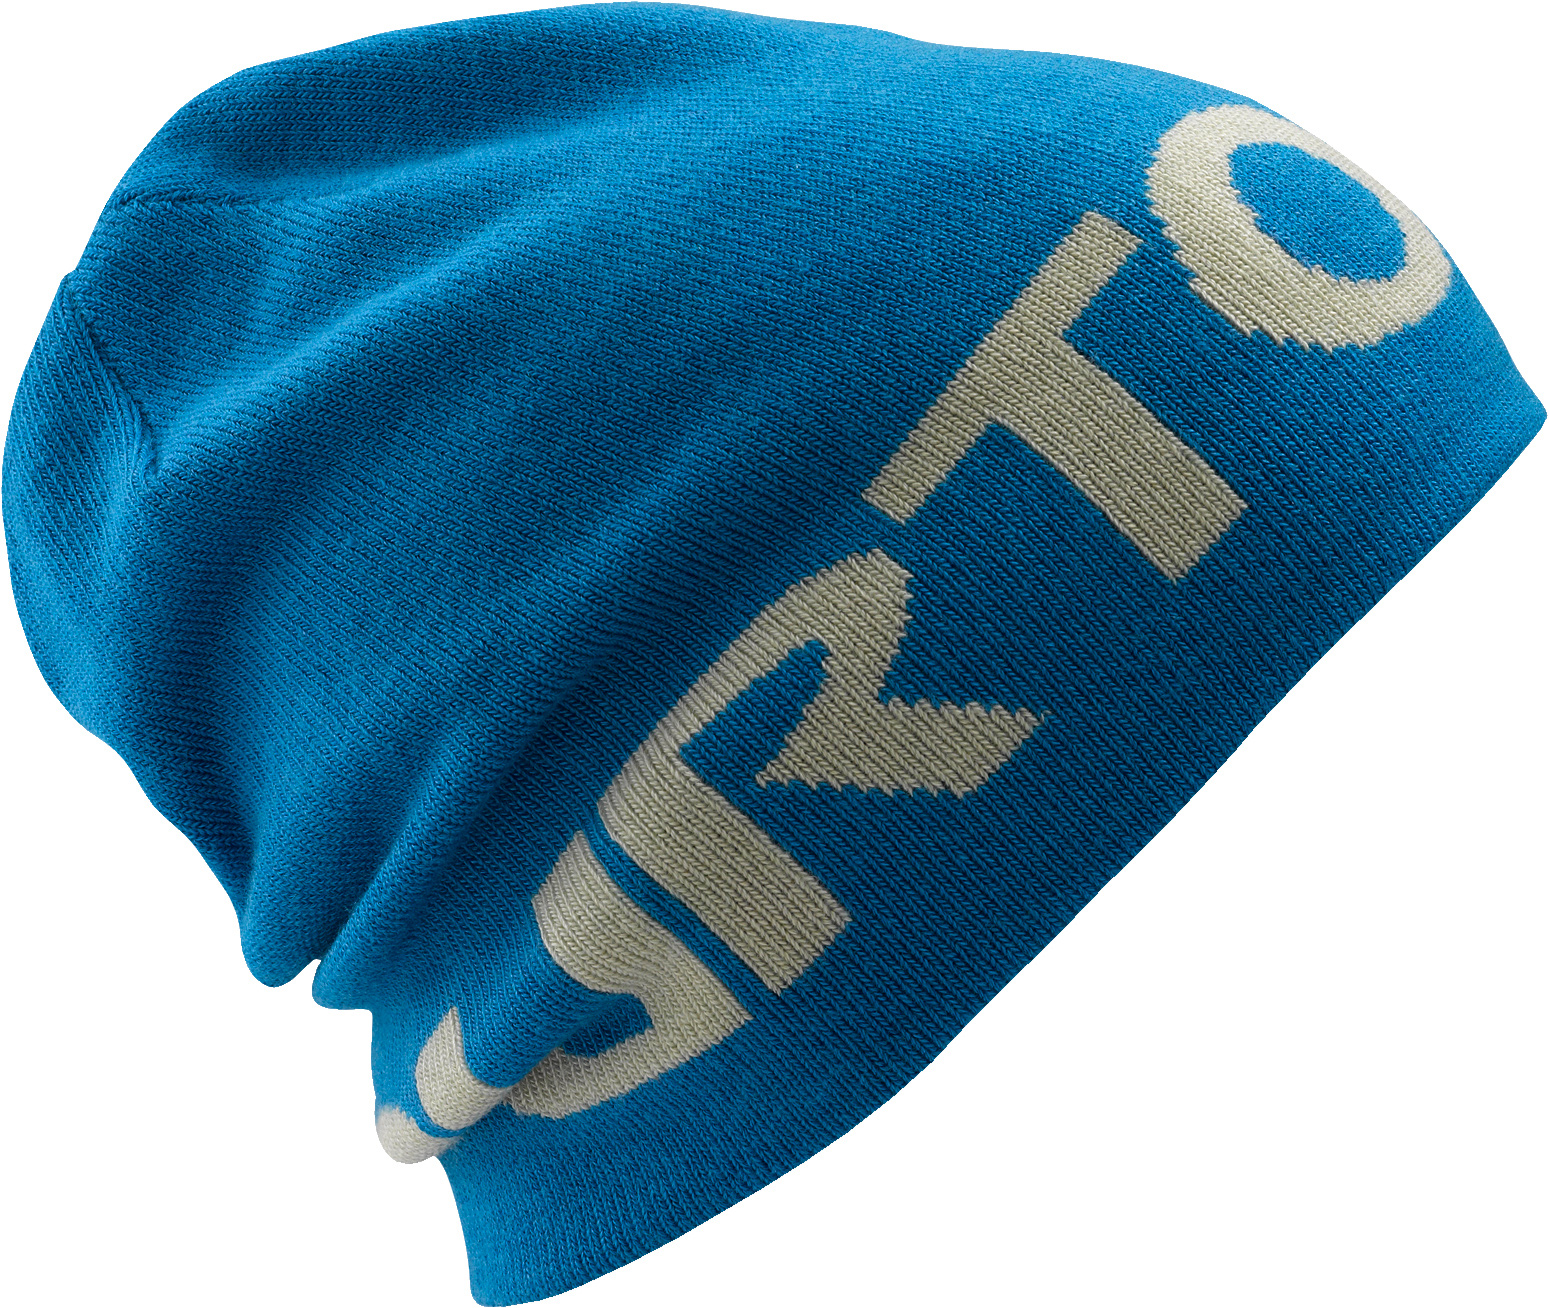 Snowboard Key Features of the Burton Billboard Beanie: 100% Acrylic Reversible Beanie in Solid Jacquard Skully Fit - $20.00